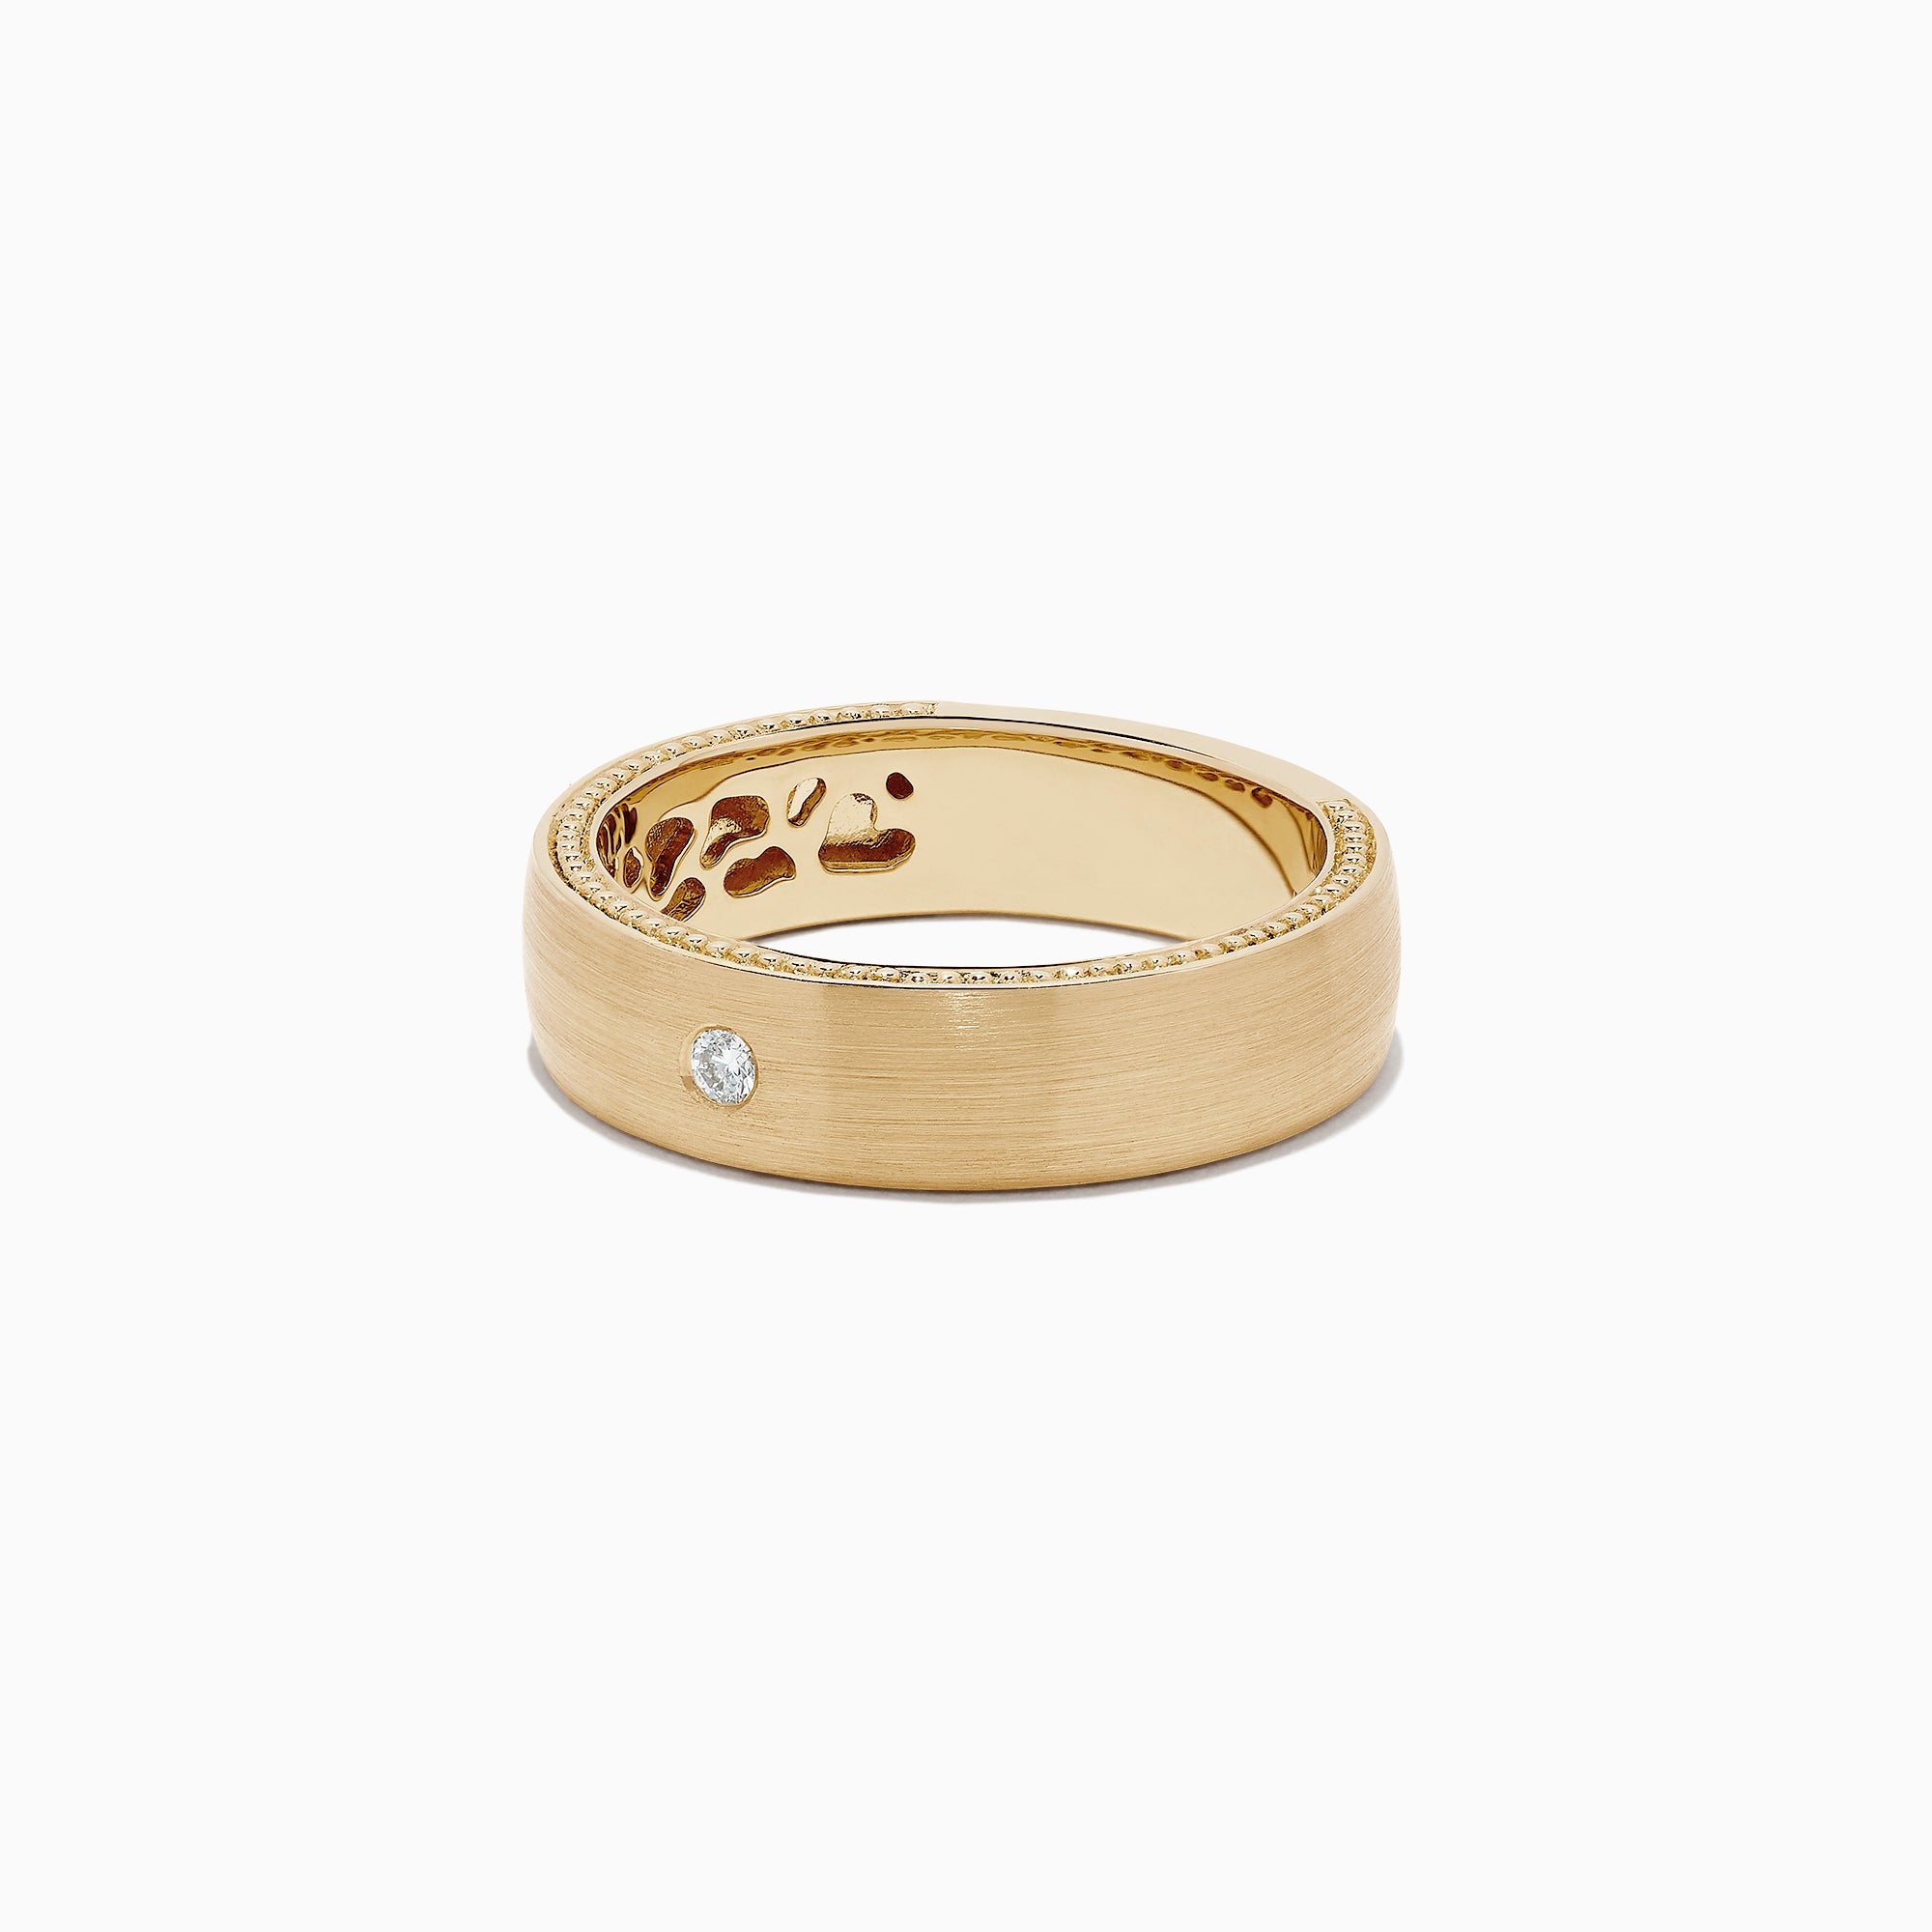 Effy Men's 14K Yellow Gold Diamond Accented Ring, 0.05 TCW